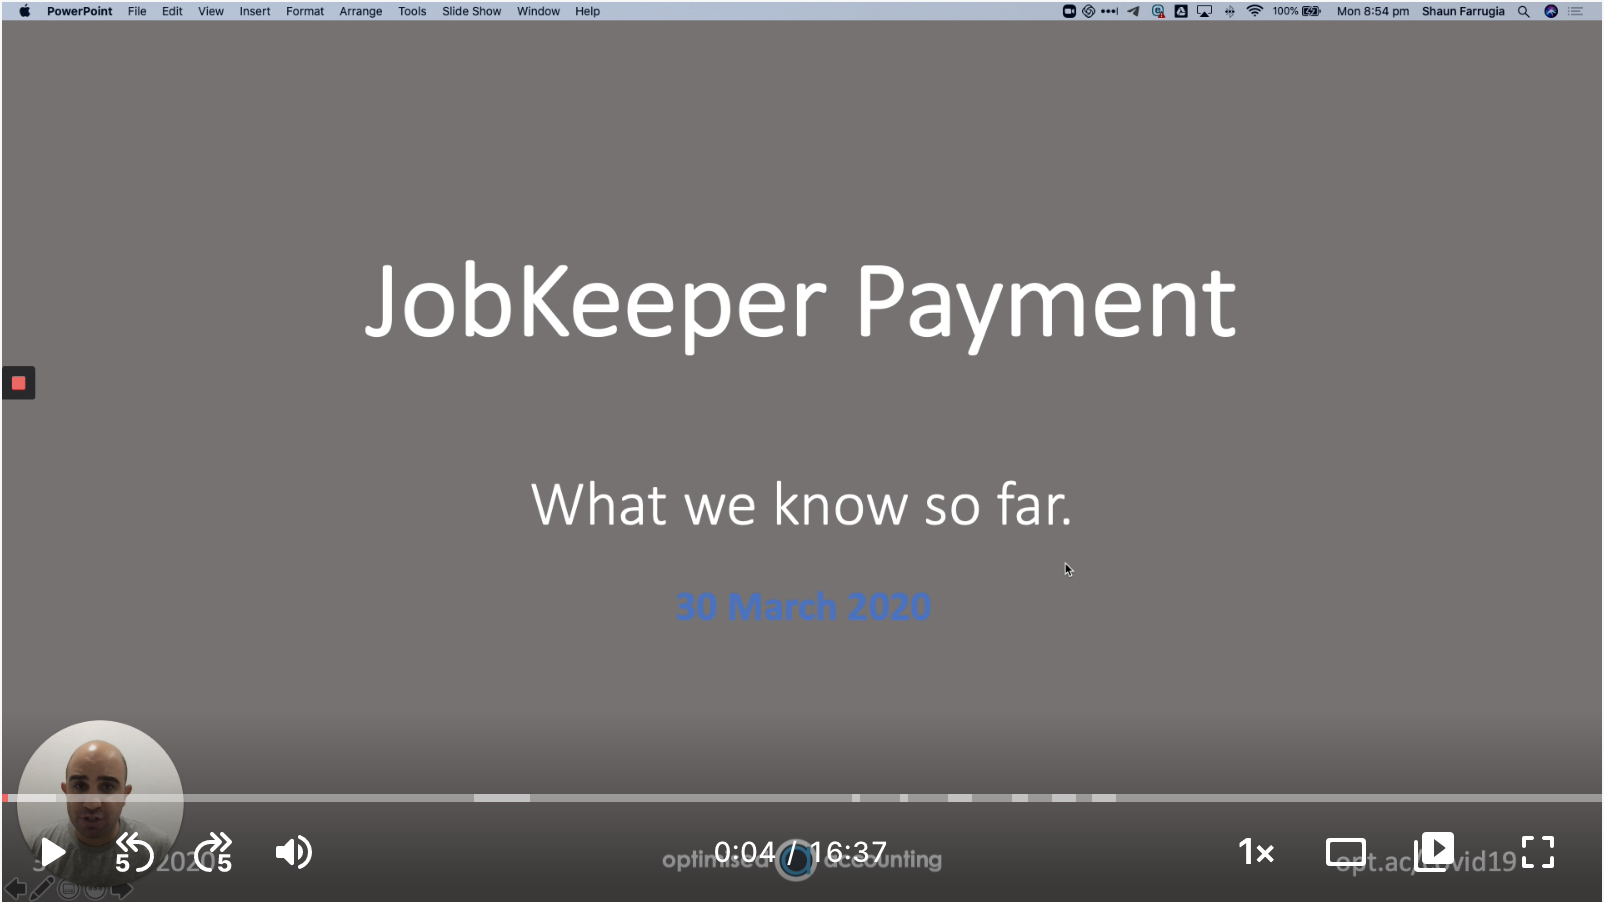 JobKeeper payment explained